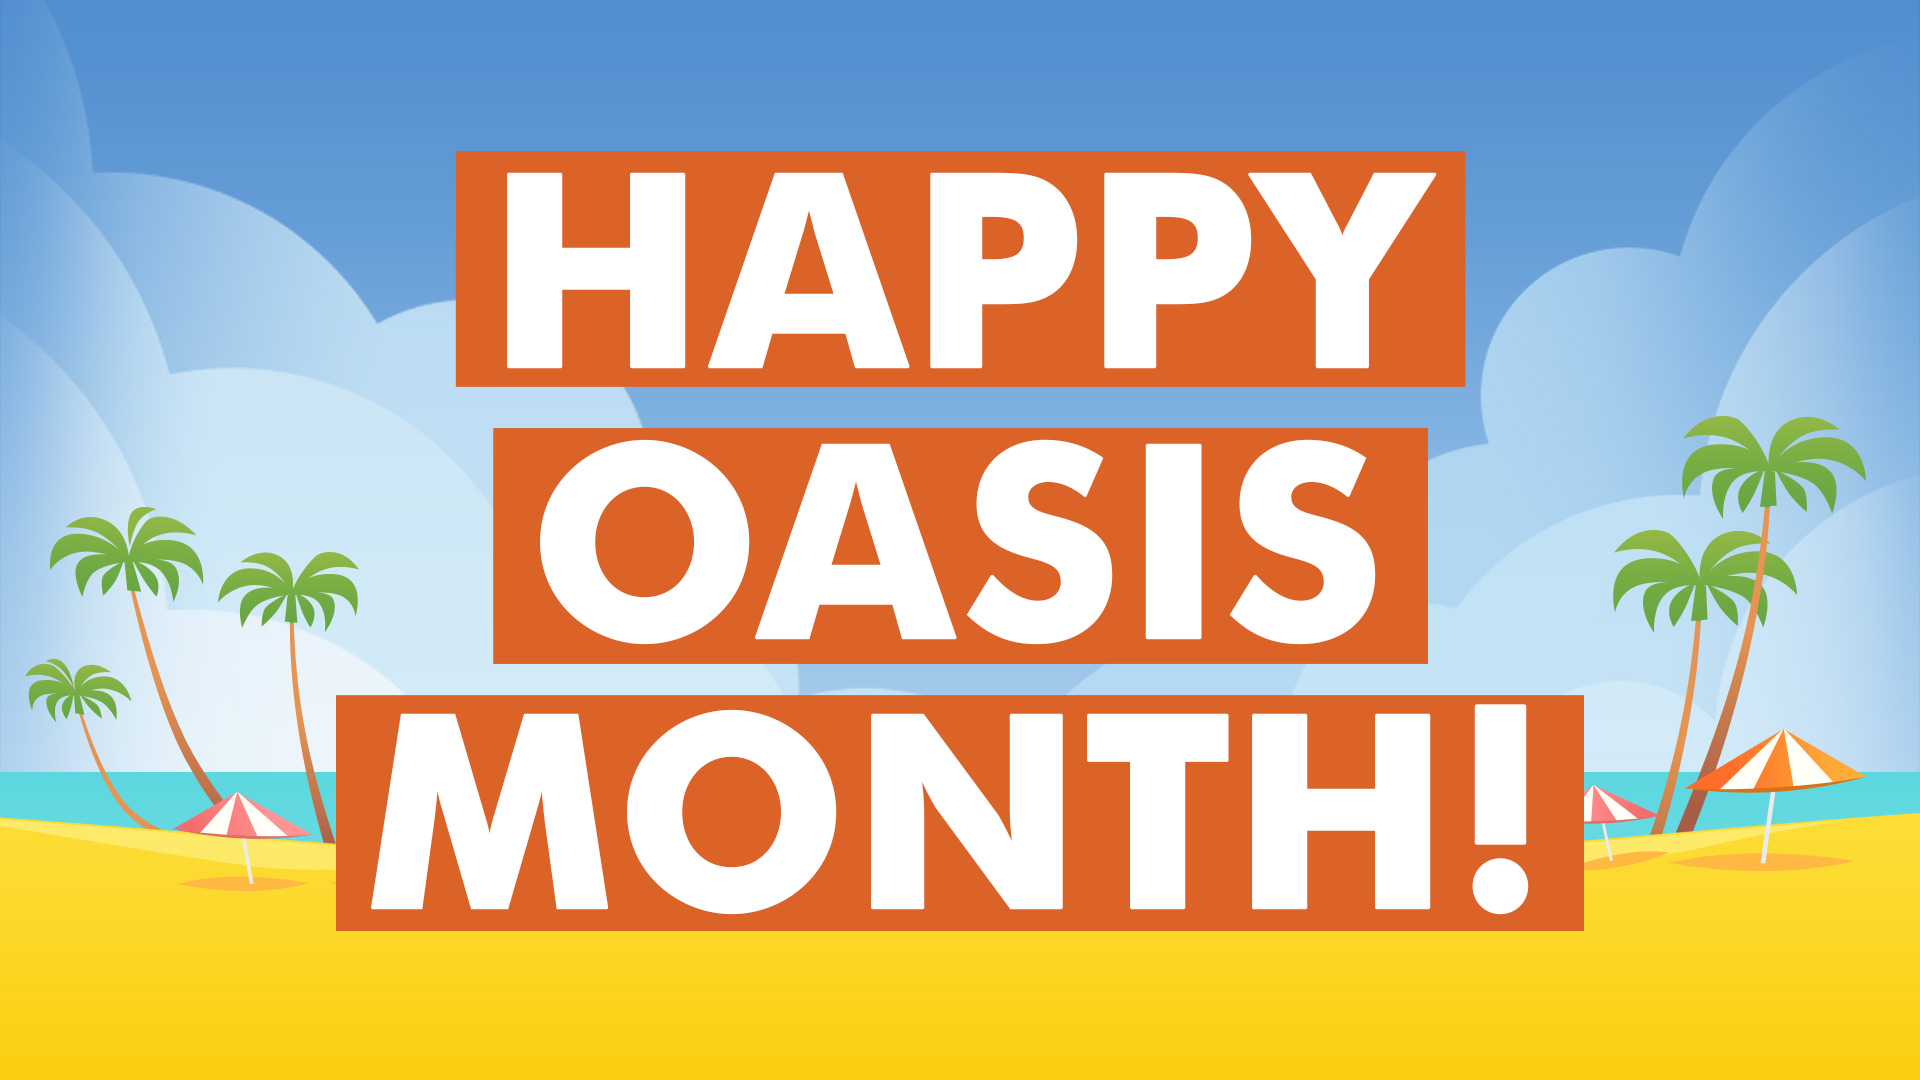 Happy Oasis Month!